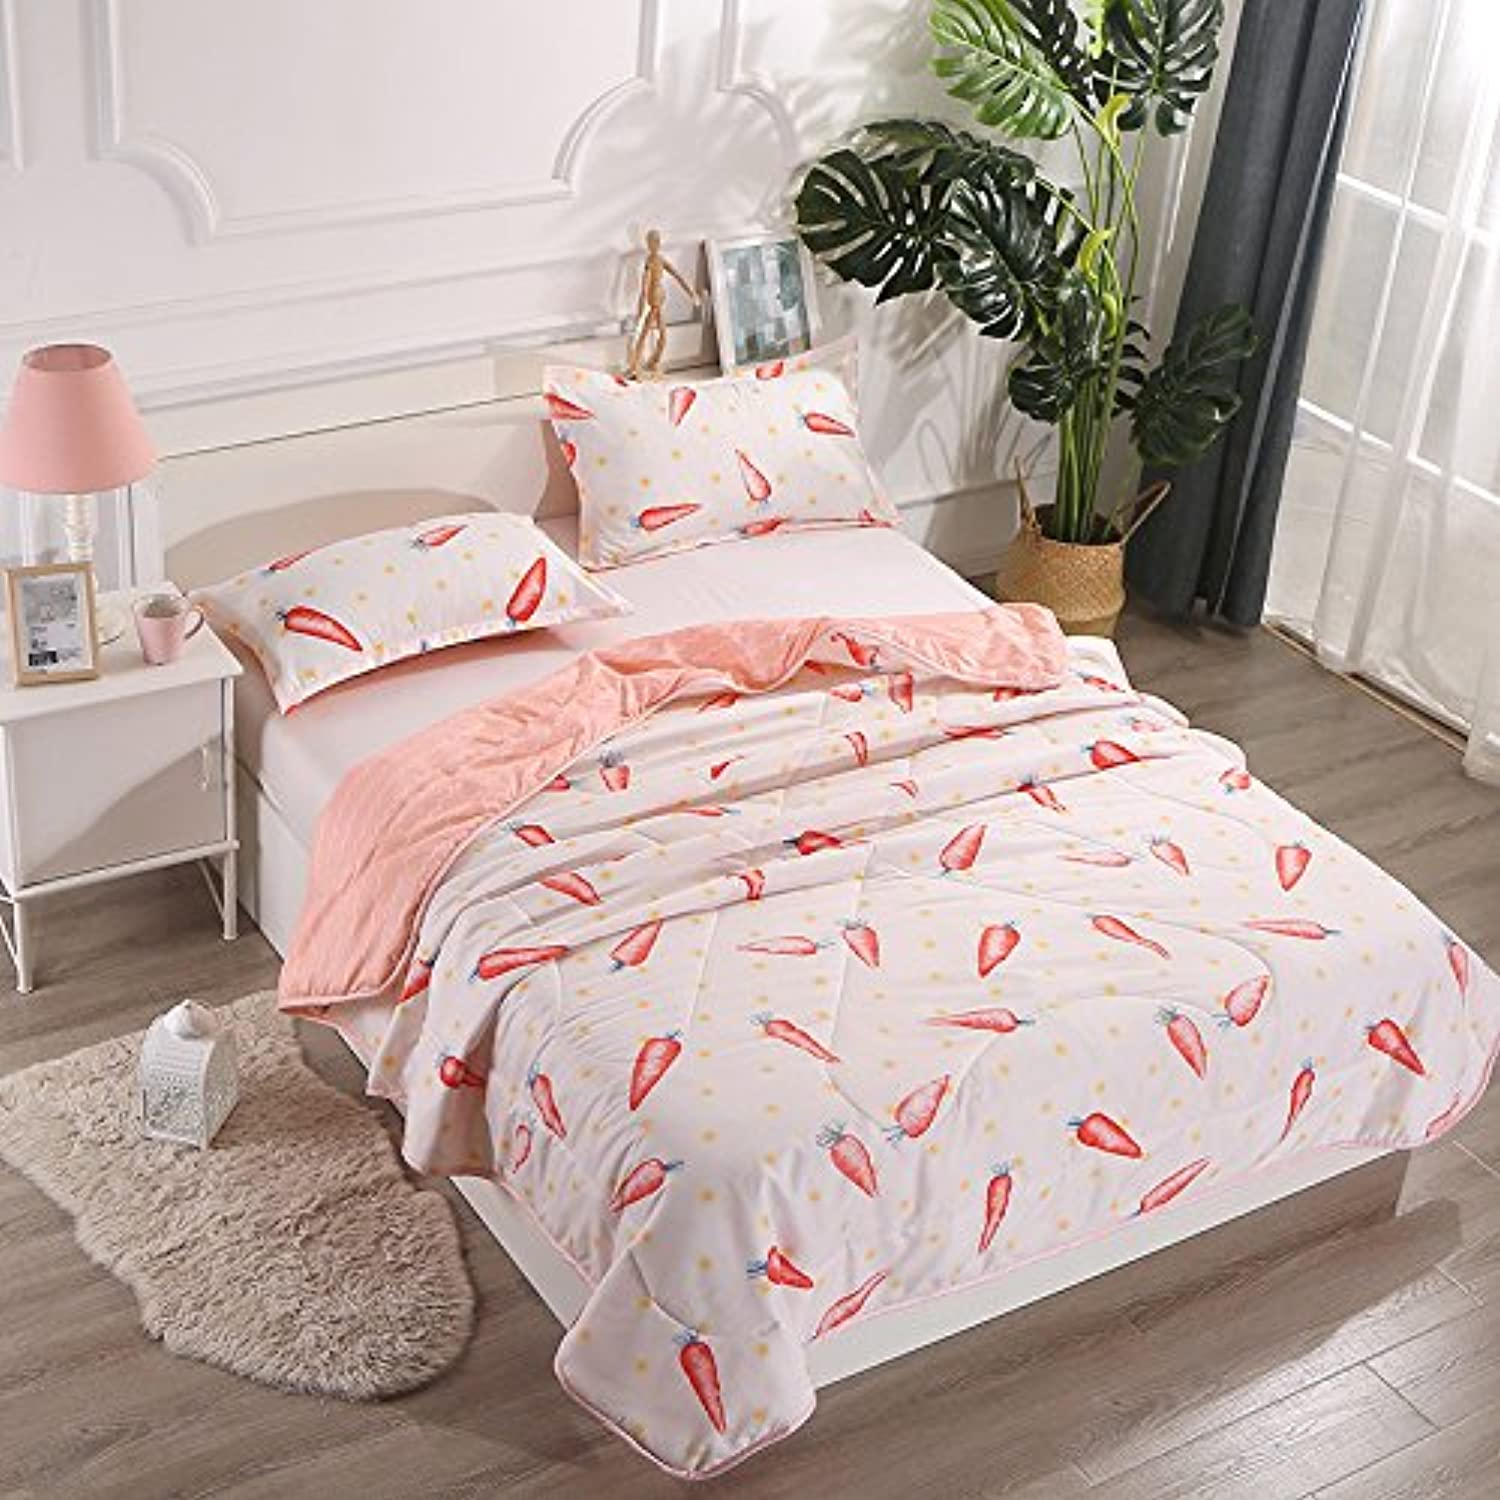 KFZ Summer Quilt Comforter Bed Set No Pillow Covers CA Twin Full Queen Princess Simple Stye Strawberry Leaf Plane bluee Modern Pink Design Kids One Piece (Radish, Pink, Full,70 x86 )